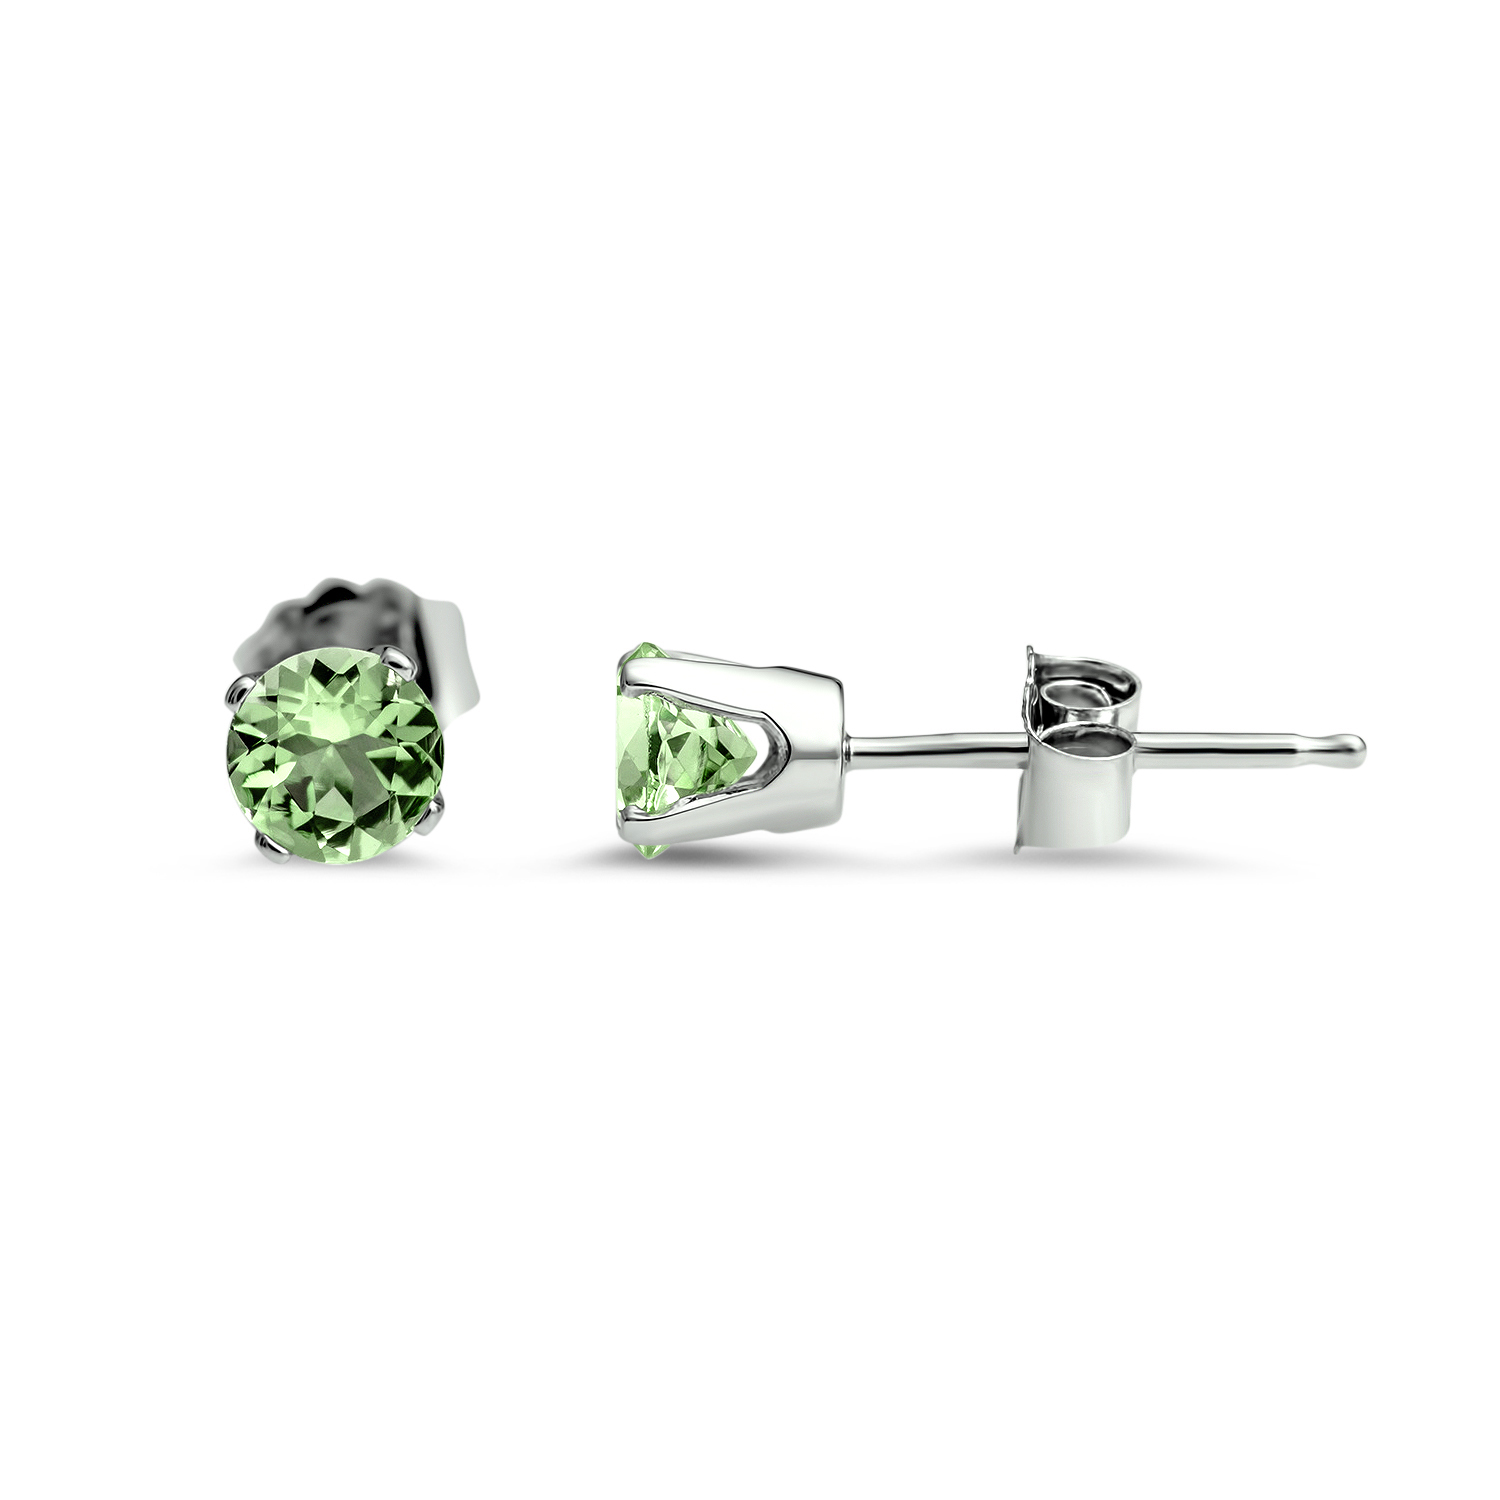 14k White Gold 4 mm Peridot Stud Earrings